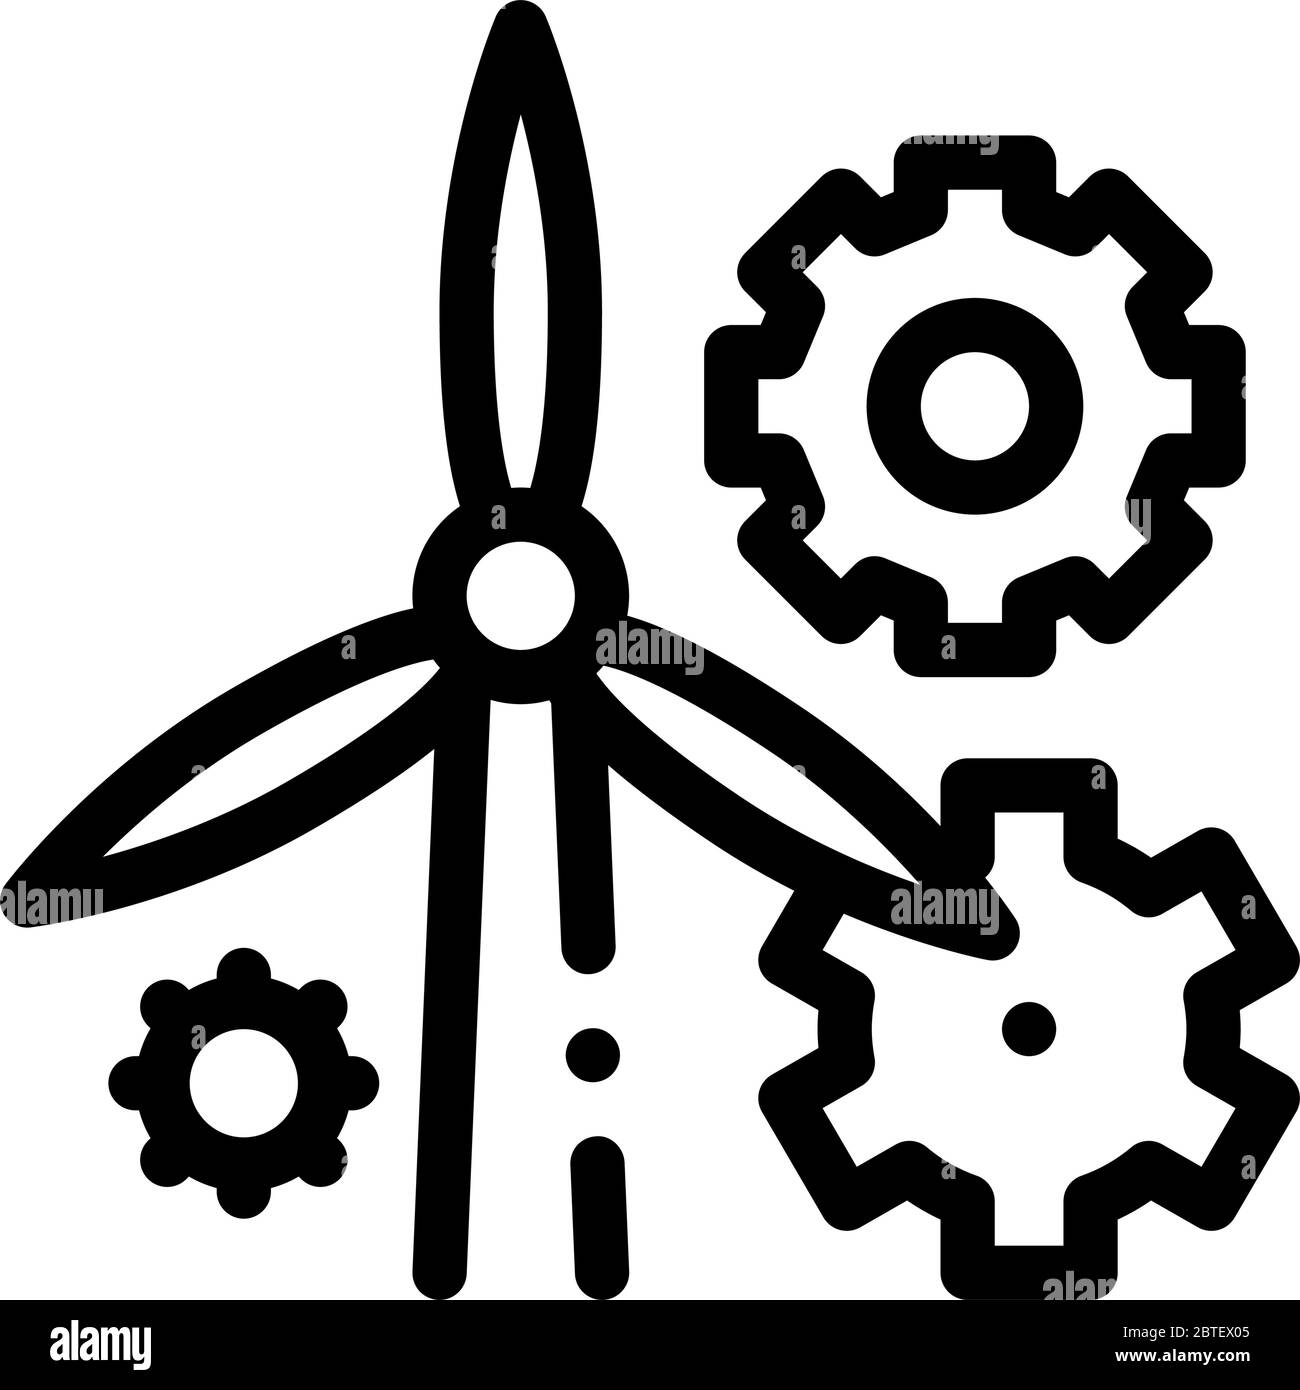 Outline Of Windmill Black And White Stock Photos Images Alamy